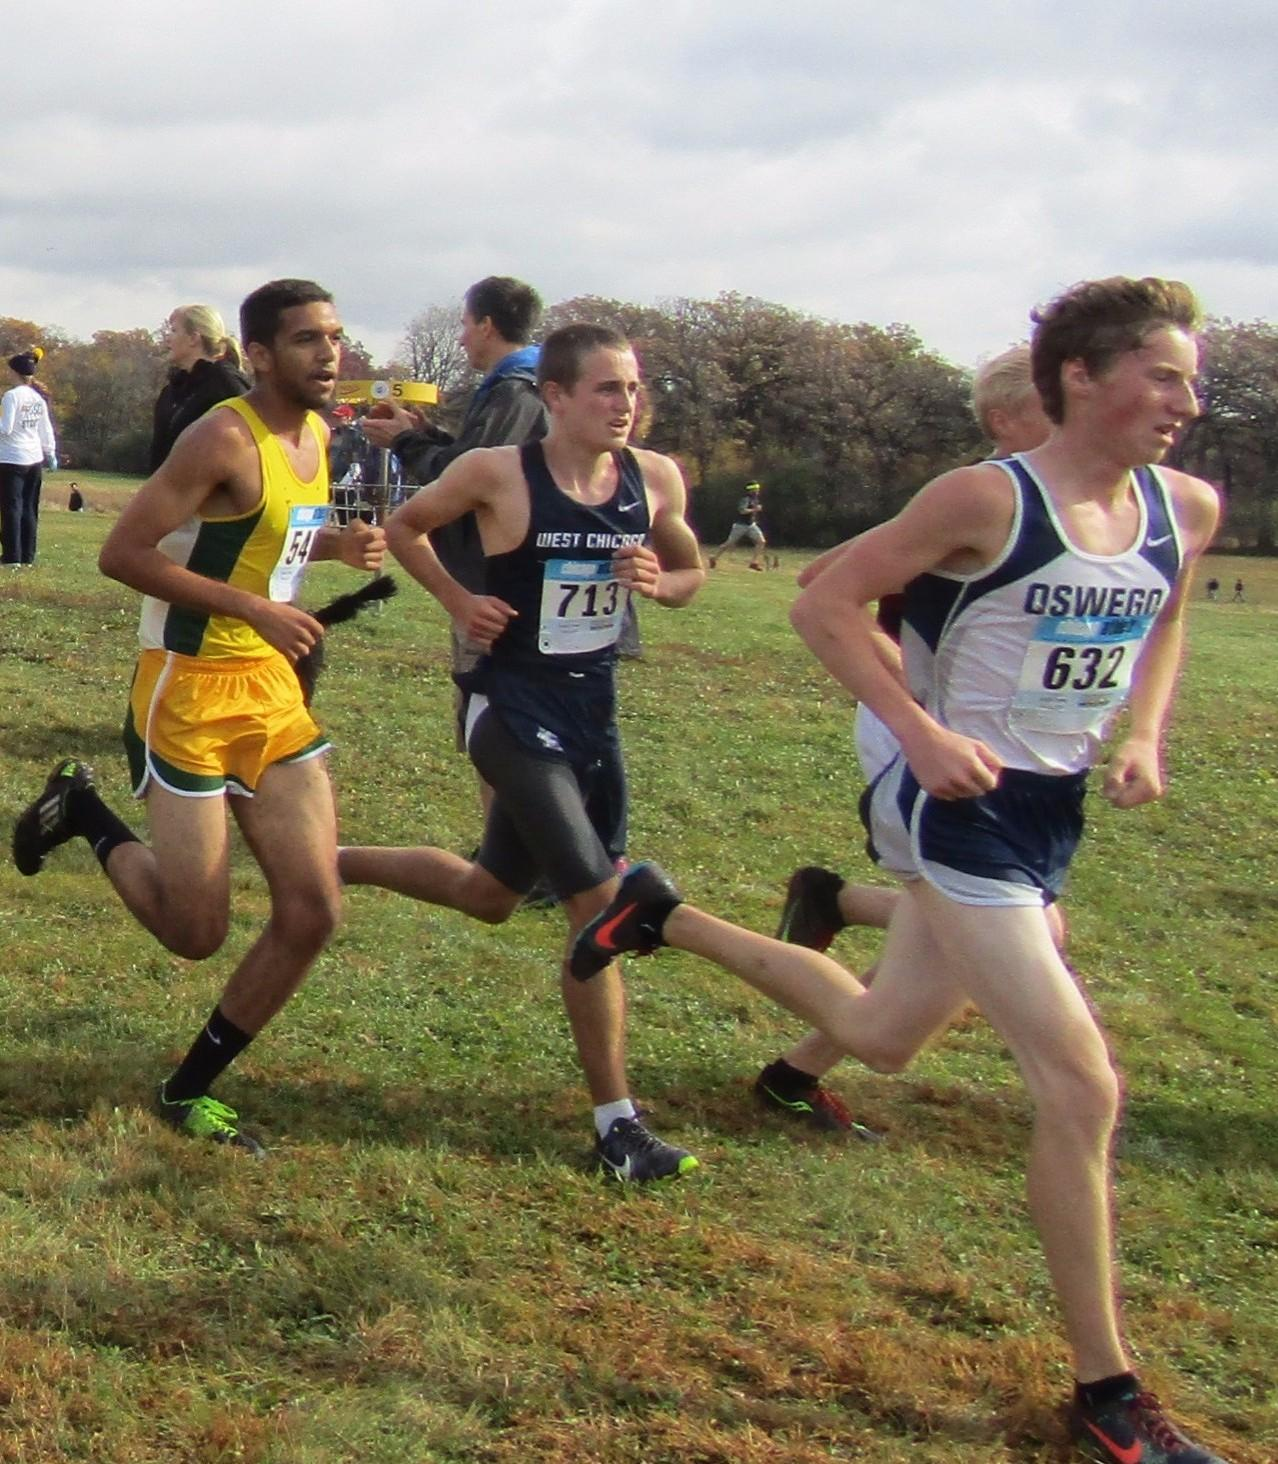 Junior Danny McComb (center) finished 14th out of 62 runners at the regional meet hosted by West Chicago to qualify for sectionals. His finishing time was 15:50.4.